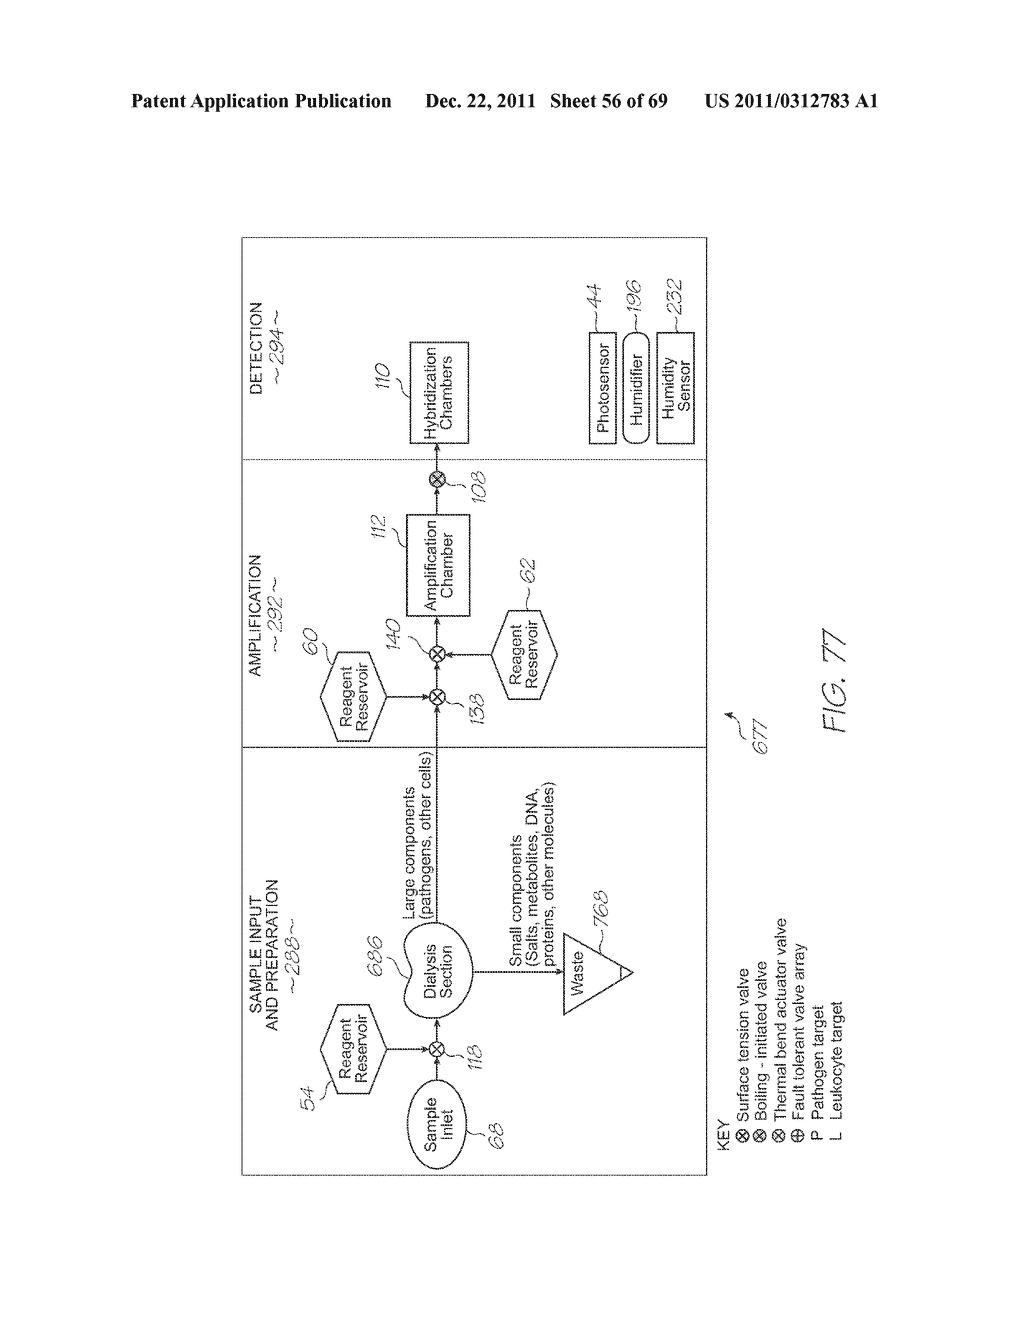 GENETIC ANALYSIS LOC WITH HYBRIDIZATION ARRAY WITH NEGATIVE CONTROL     COMPRISING EMPTY CHAMBERS - diagram, schematic, and image 57